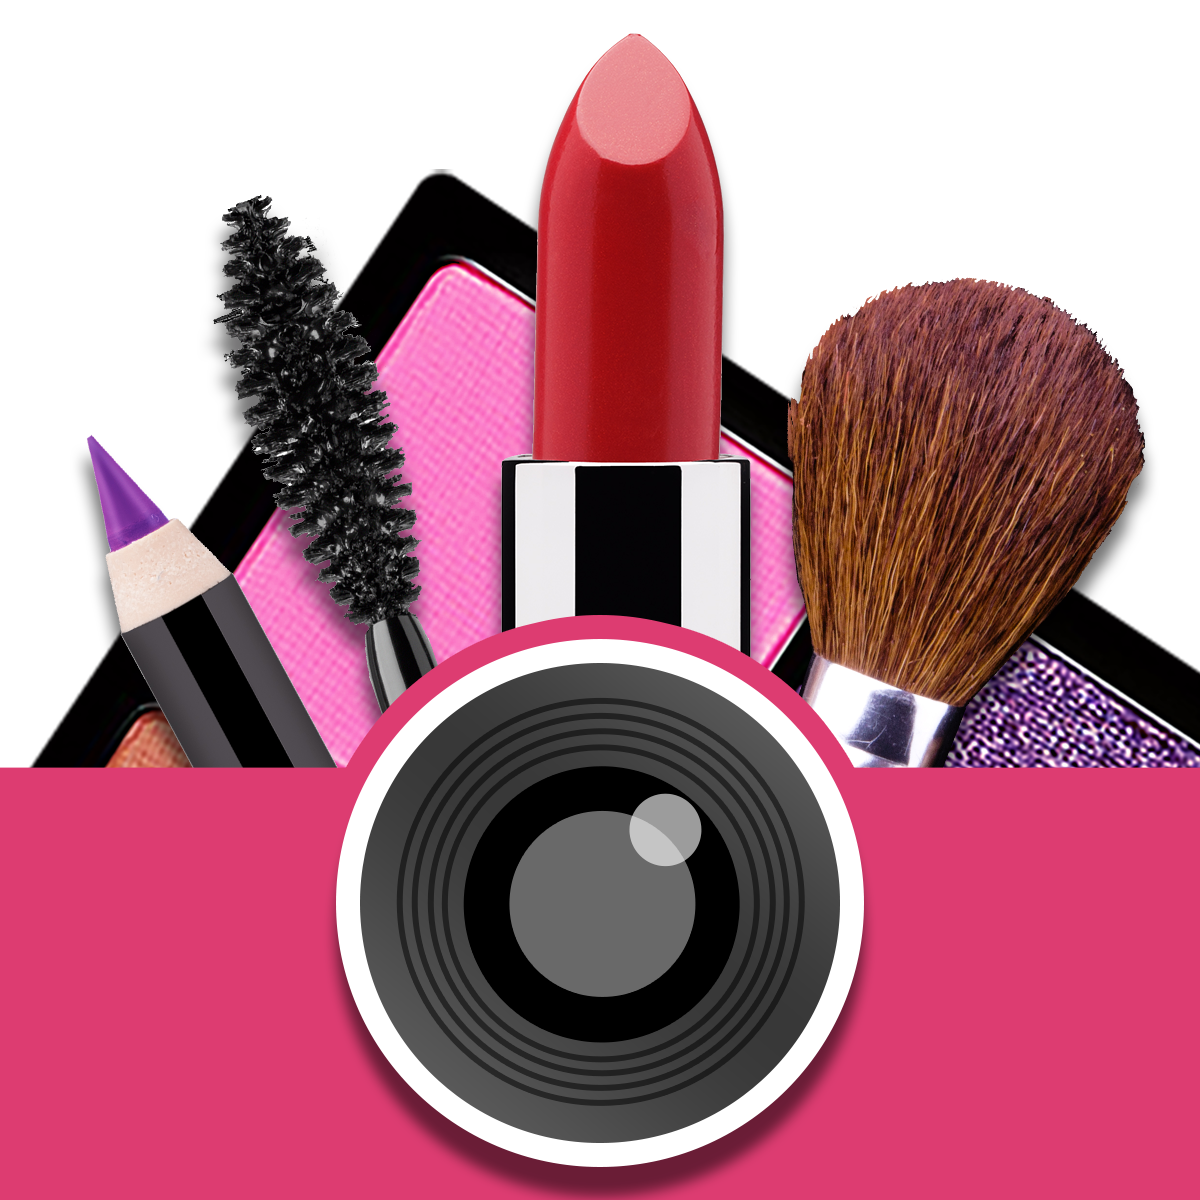 Hire Shopify Experts to integrate YouCam Makeup app into a Shopify store